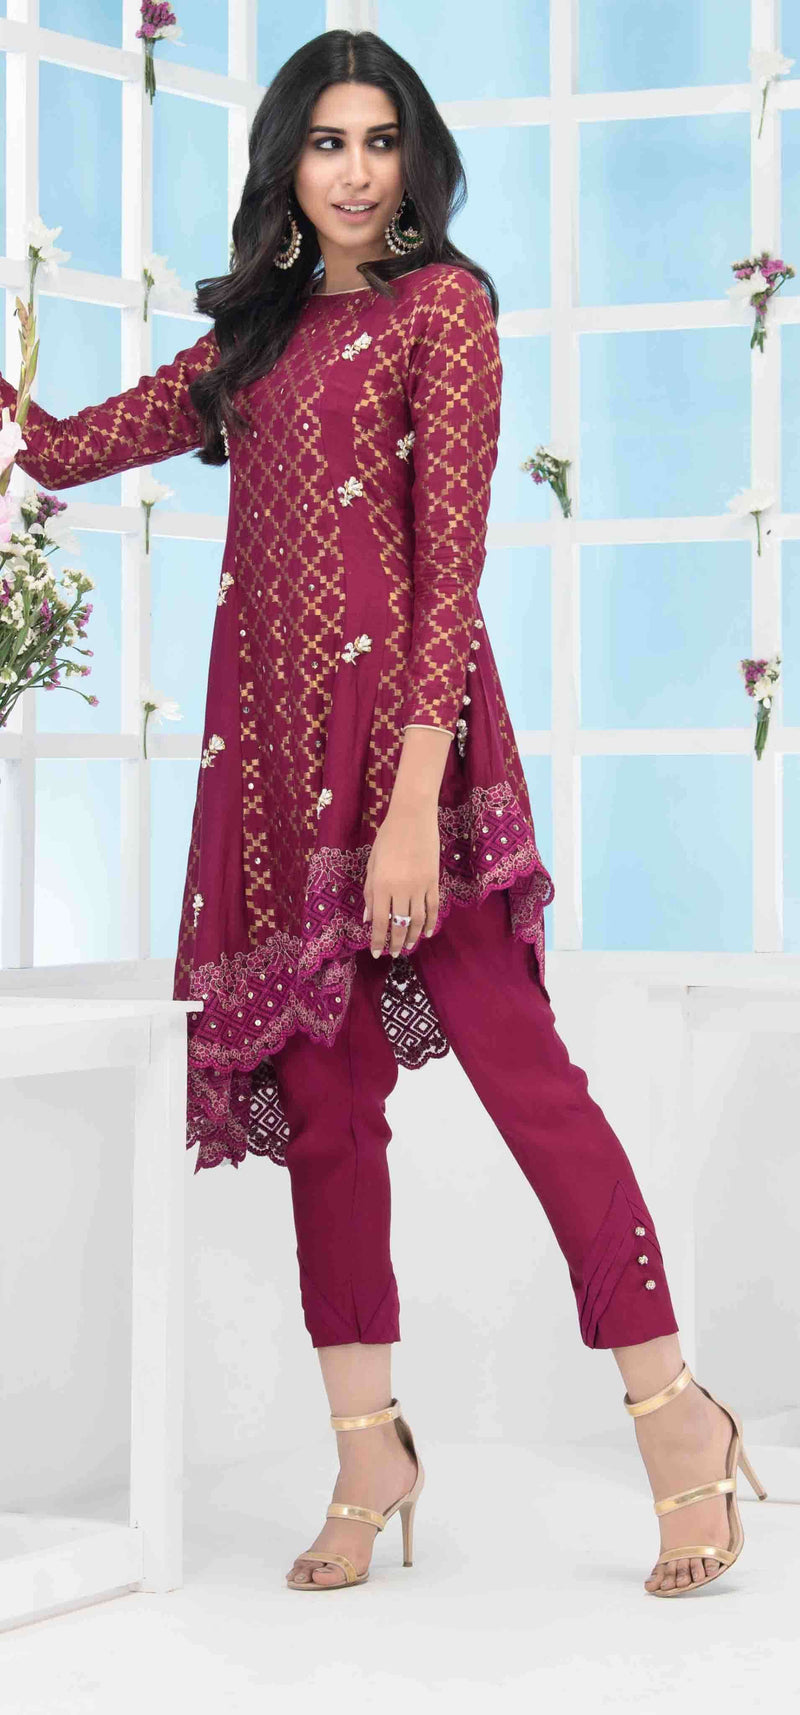 Luxury Pret, Pakistani Fashion Designer REGAL MAROON - Phatyma Khan